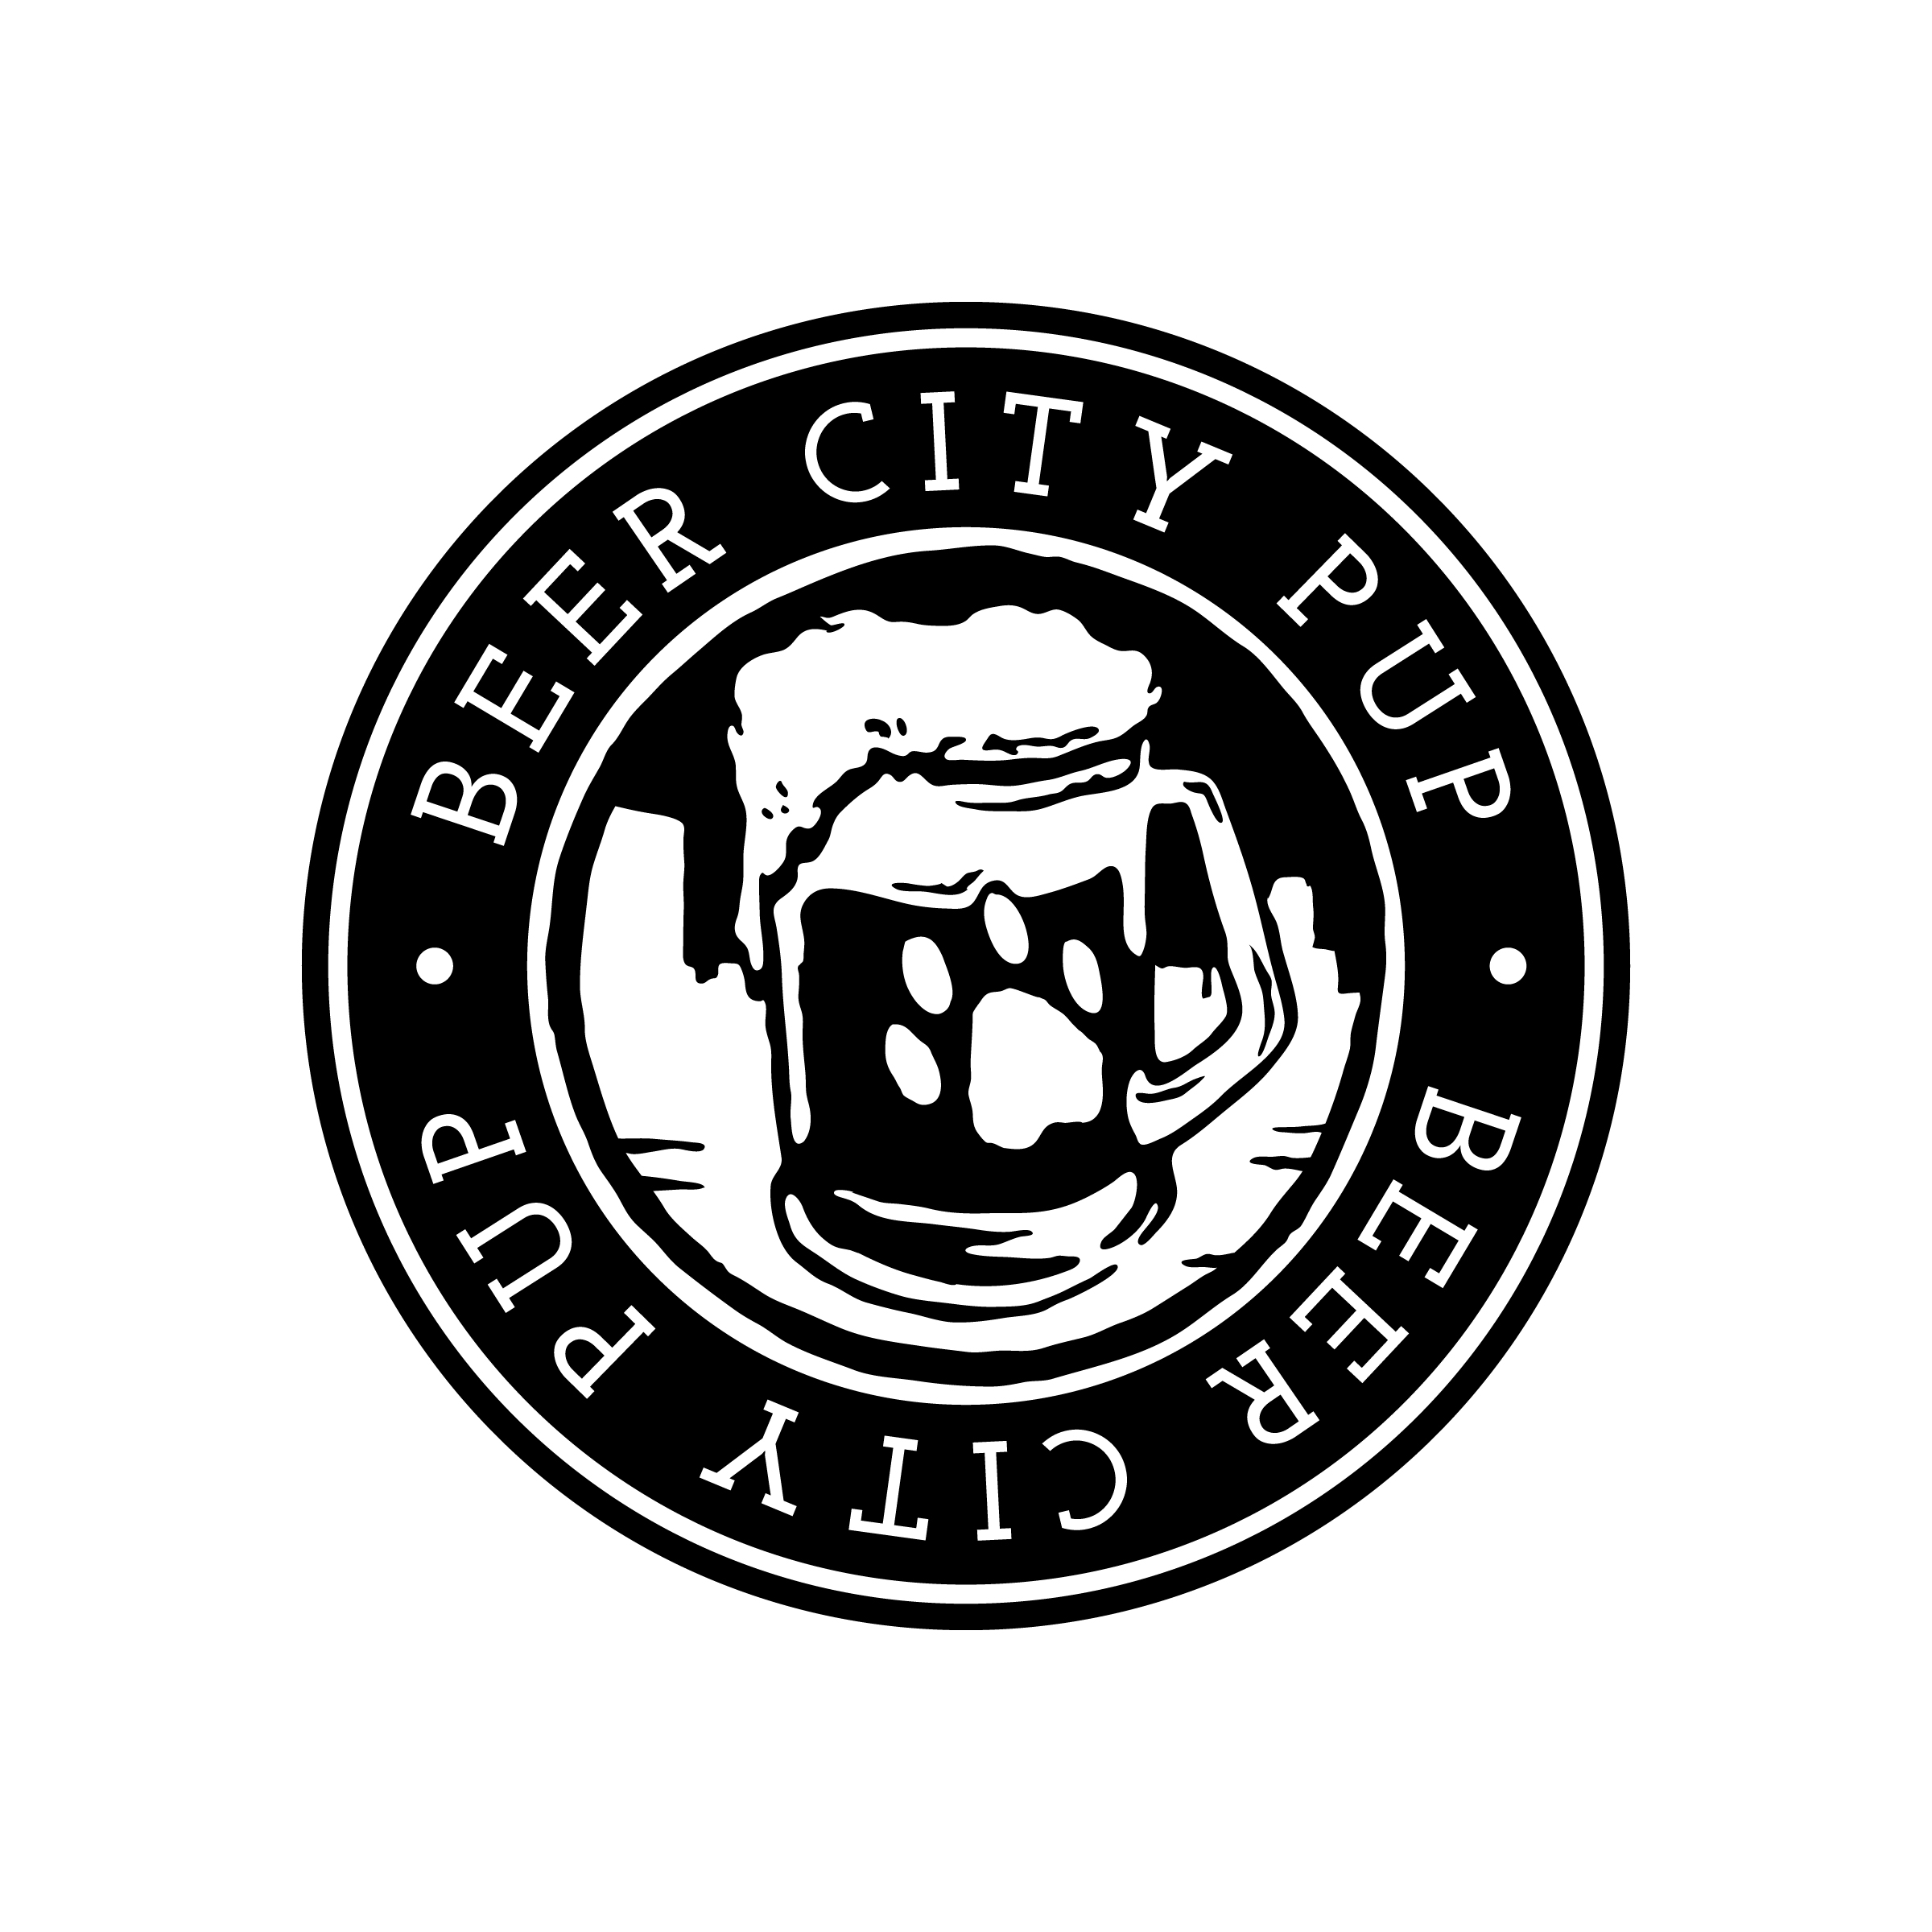 Beer City Pup New Logo FINAL.jpg